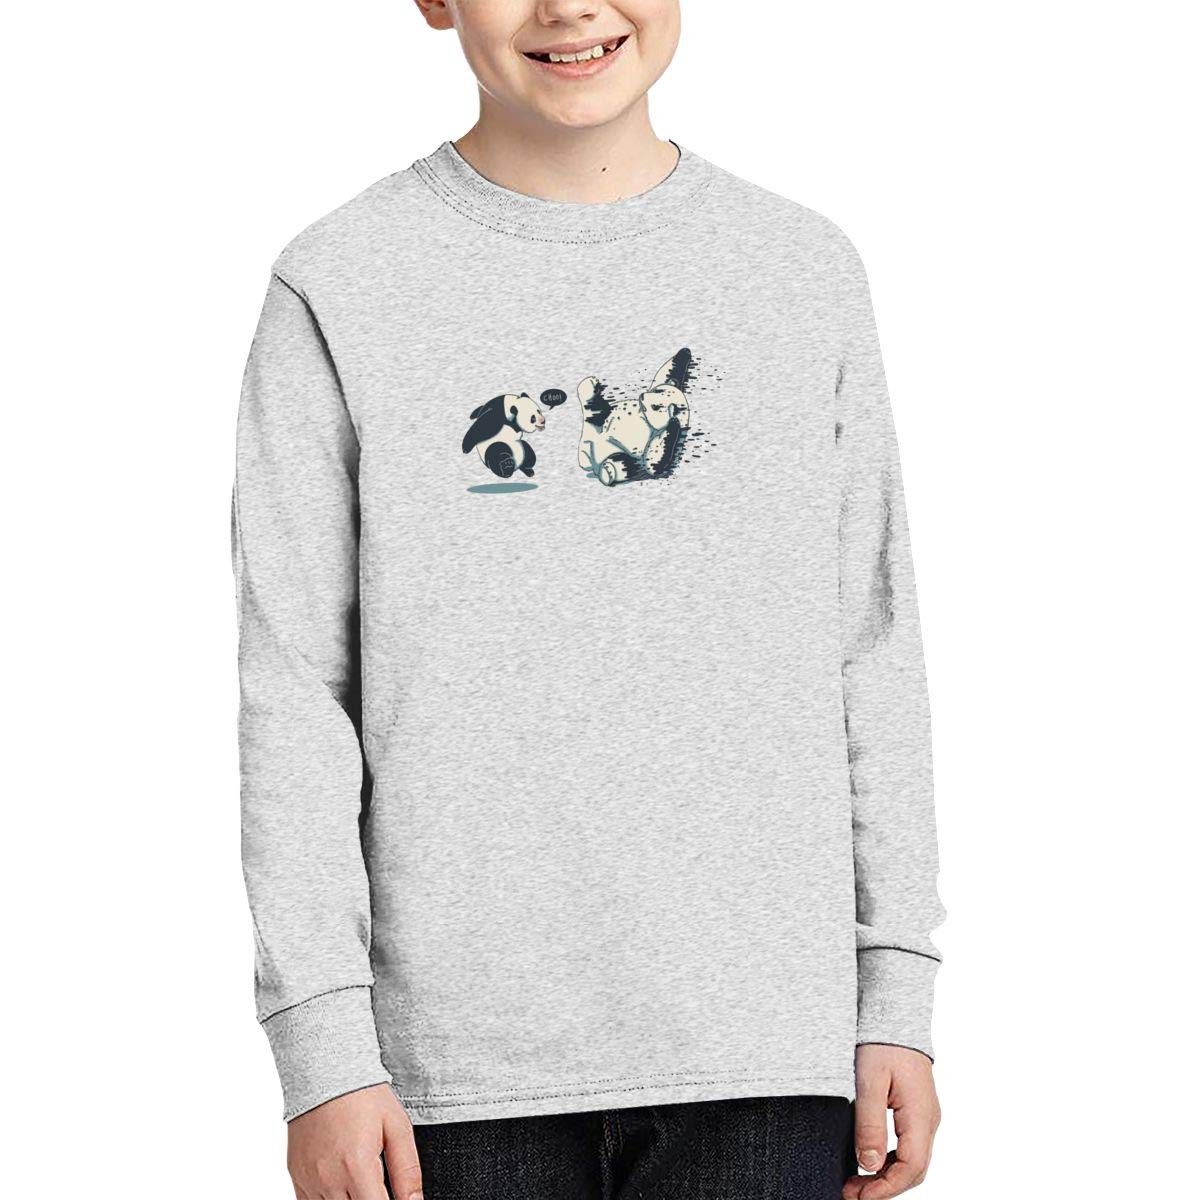 Onlybabycare Fighting Pandas Teen Boy Girl Athletic Pullover Sweatshirt Cute Shirt